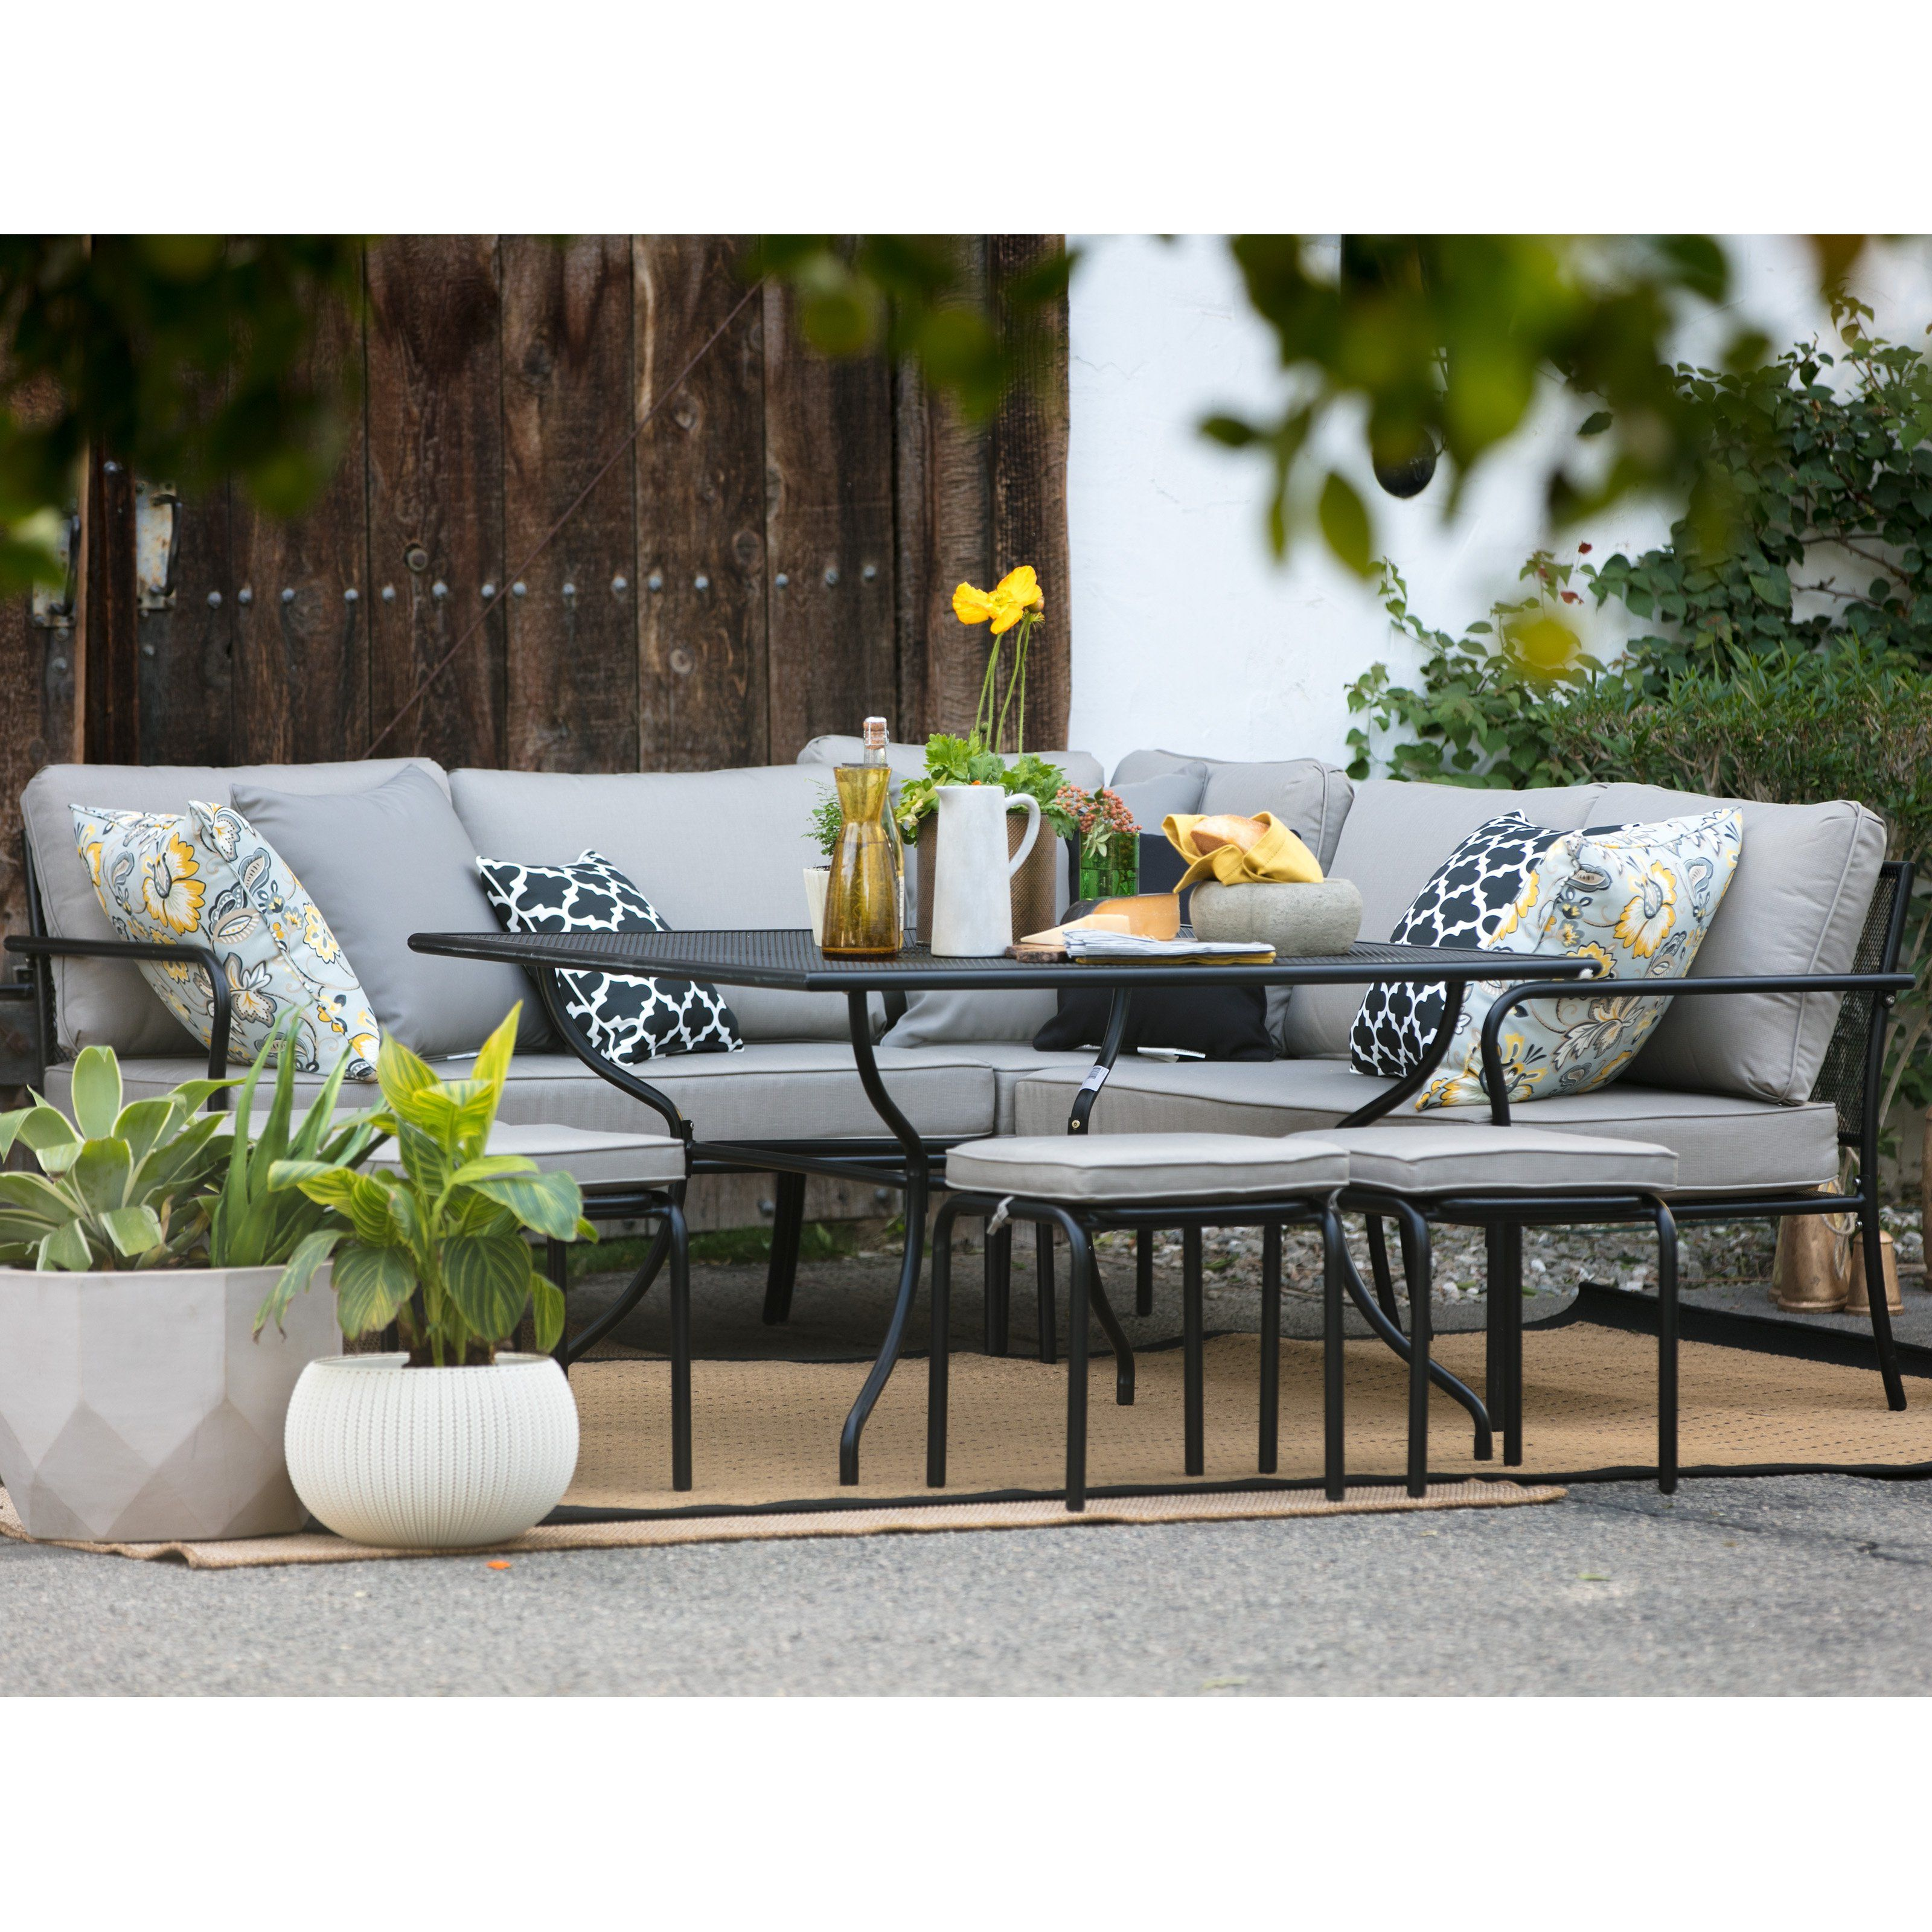 Remarkable Outdoor Belham Living Parkville Metal Sofa Sectional Patio Camellatalisay Diy Chair Ideas Camellatalisaycom